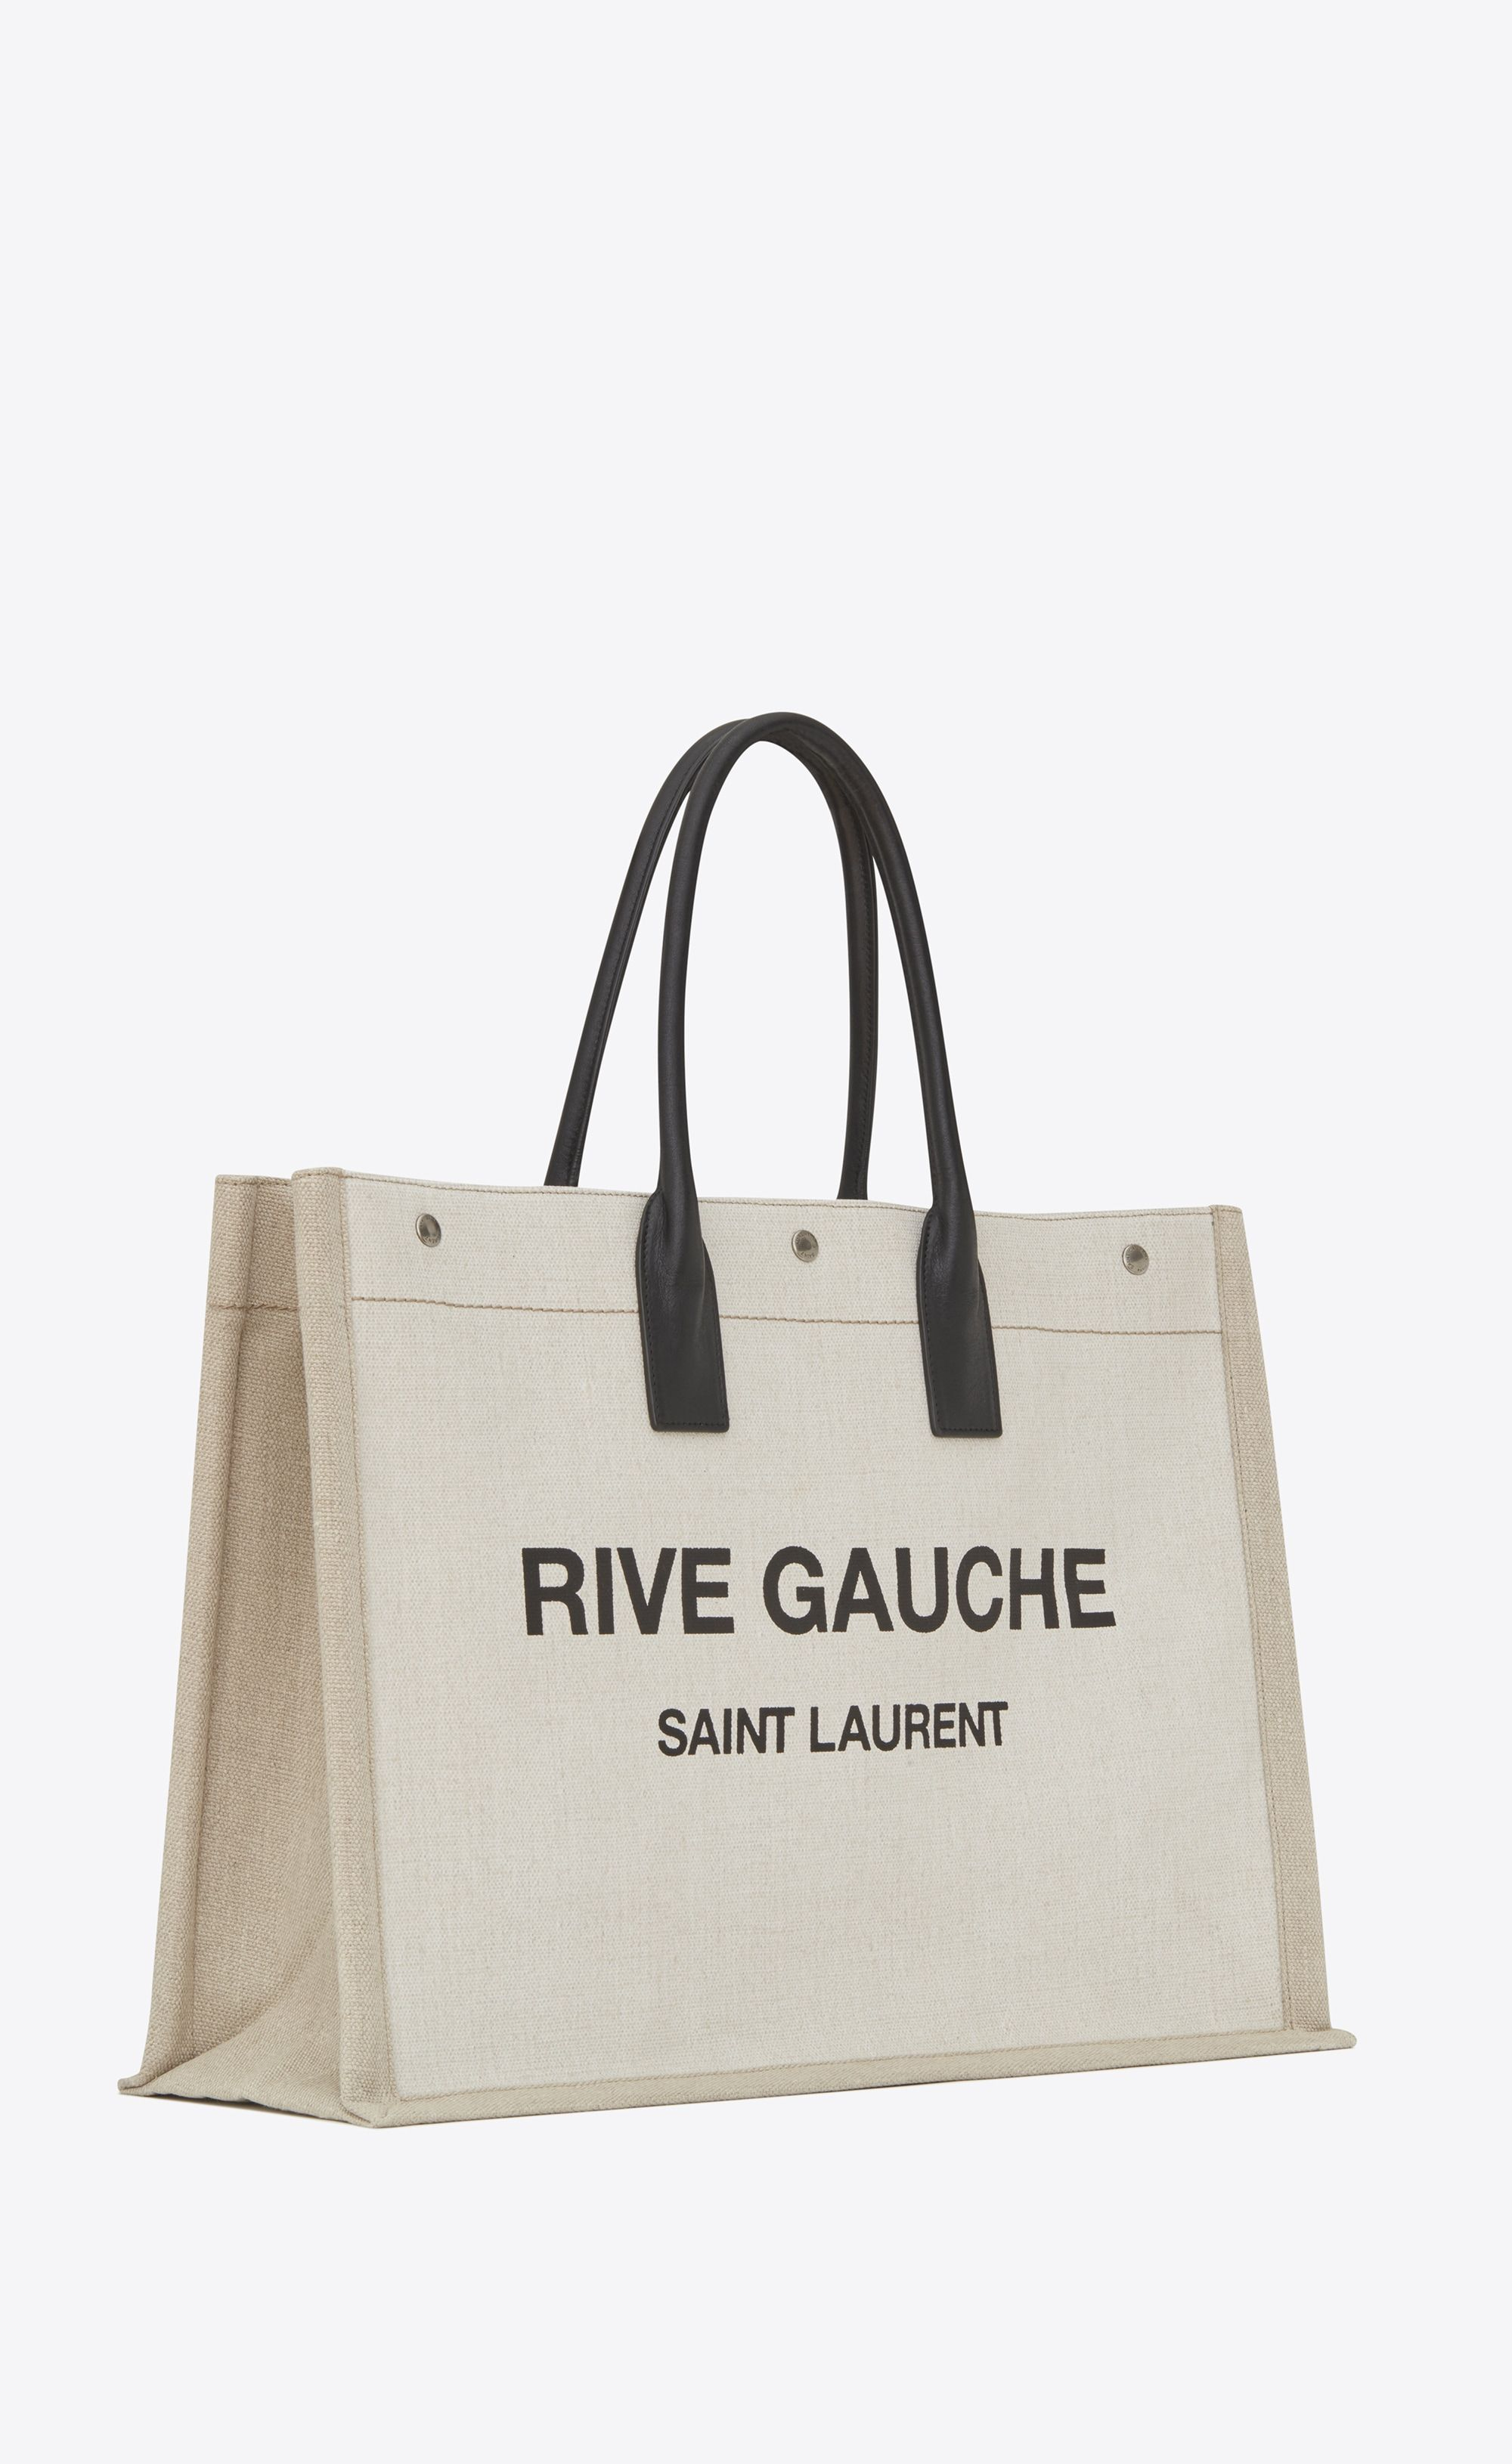 2d64d3f1c3b6 Saint Laurent - Rive Gauche tote bag in white linen and black leather ( 890)